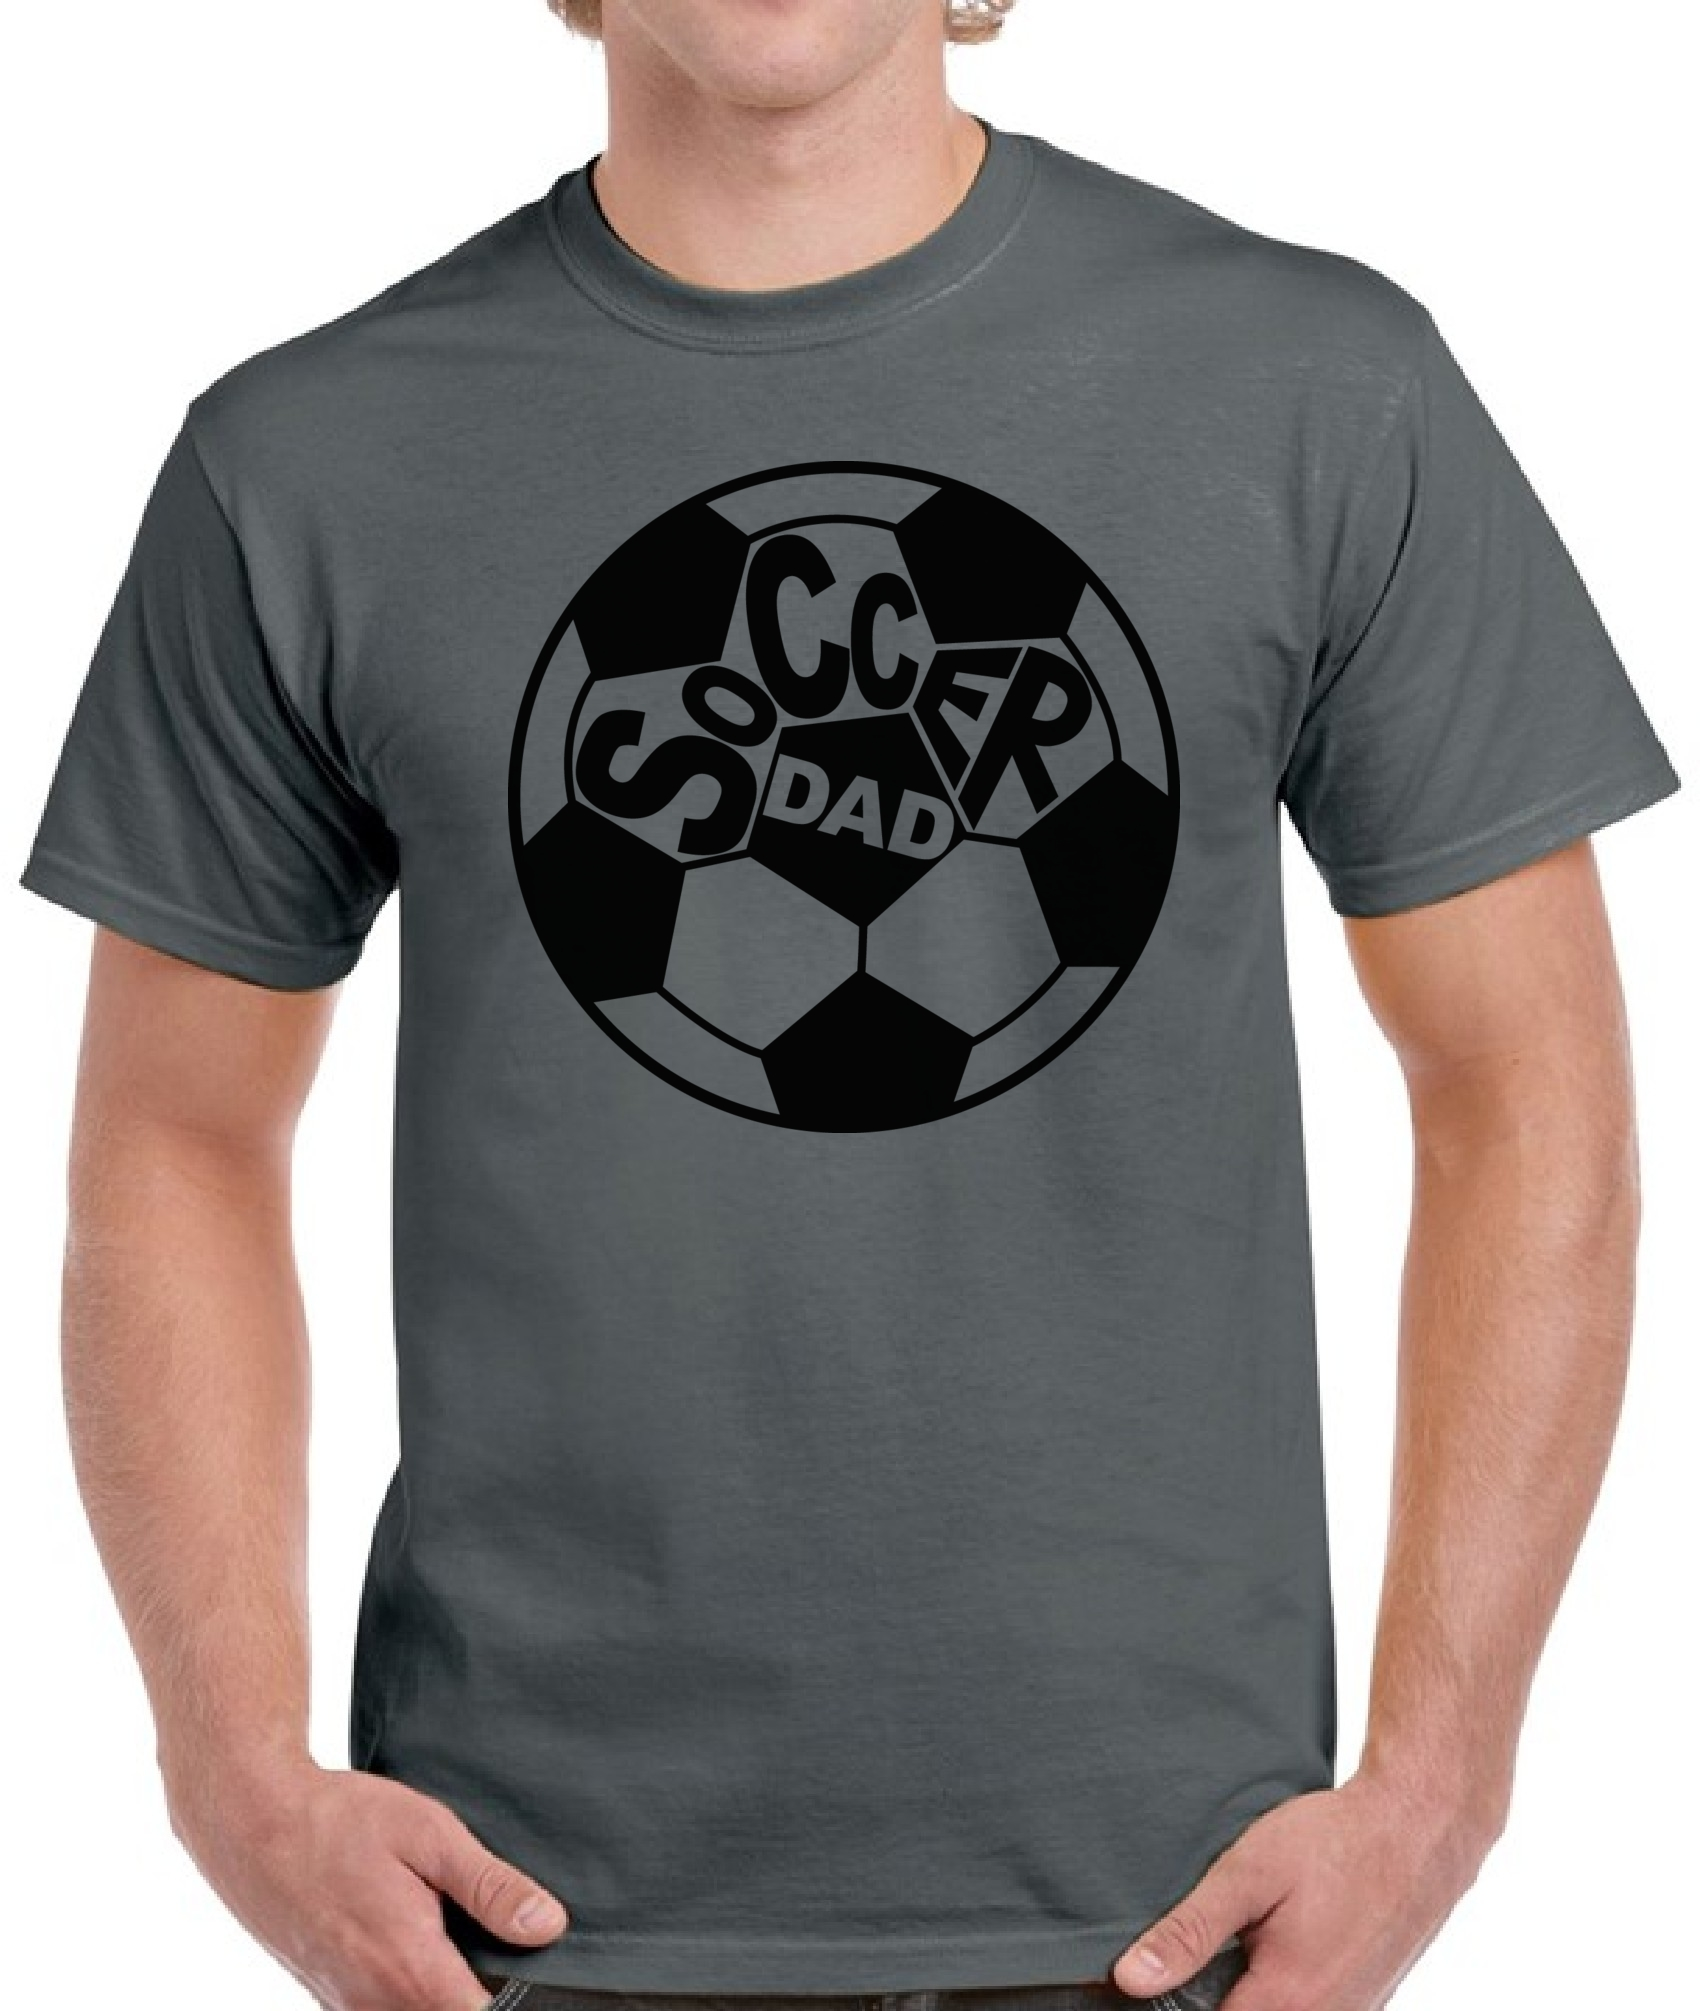 Soccer Dad Cool Shirt Top Soccer Coach Gift Daddy Gifts Father\'s Day ...